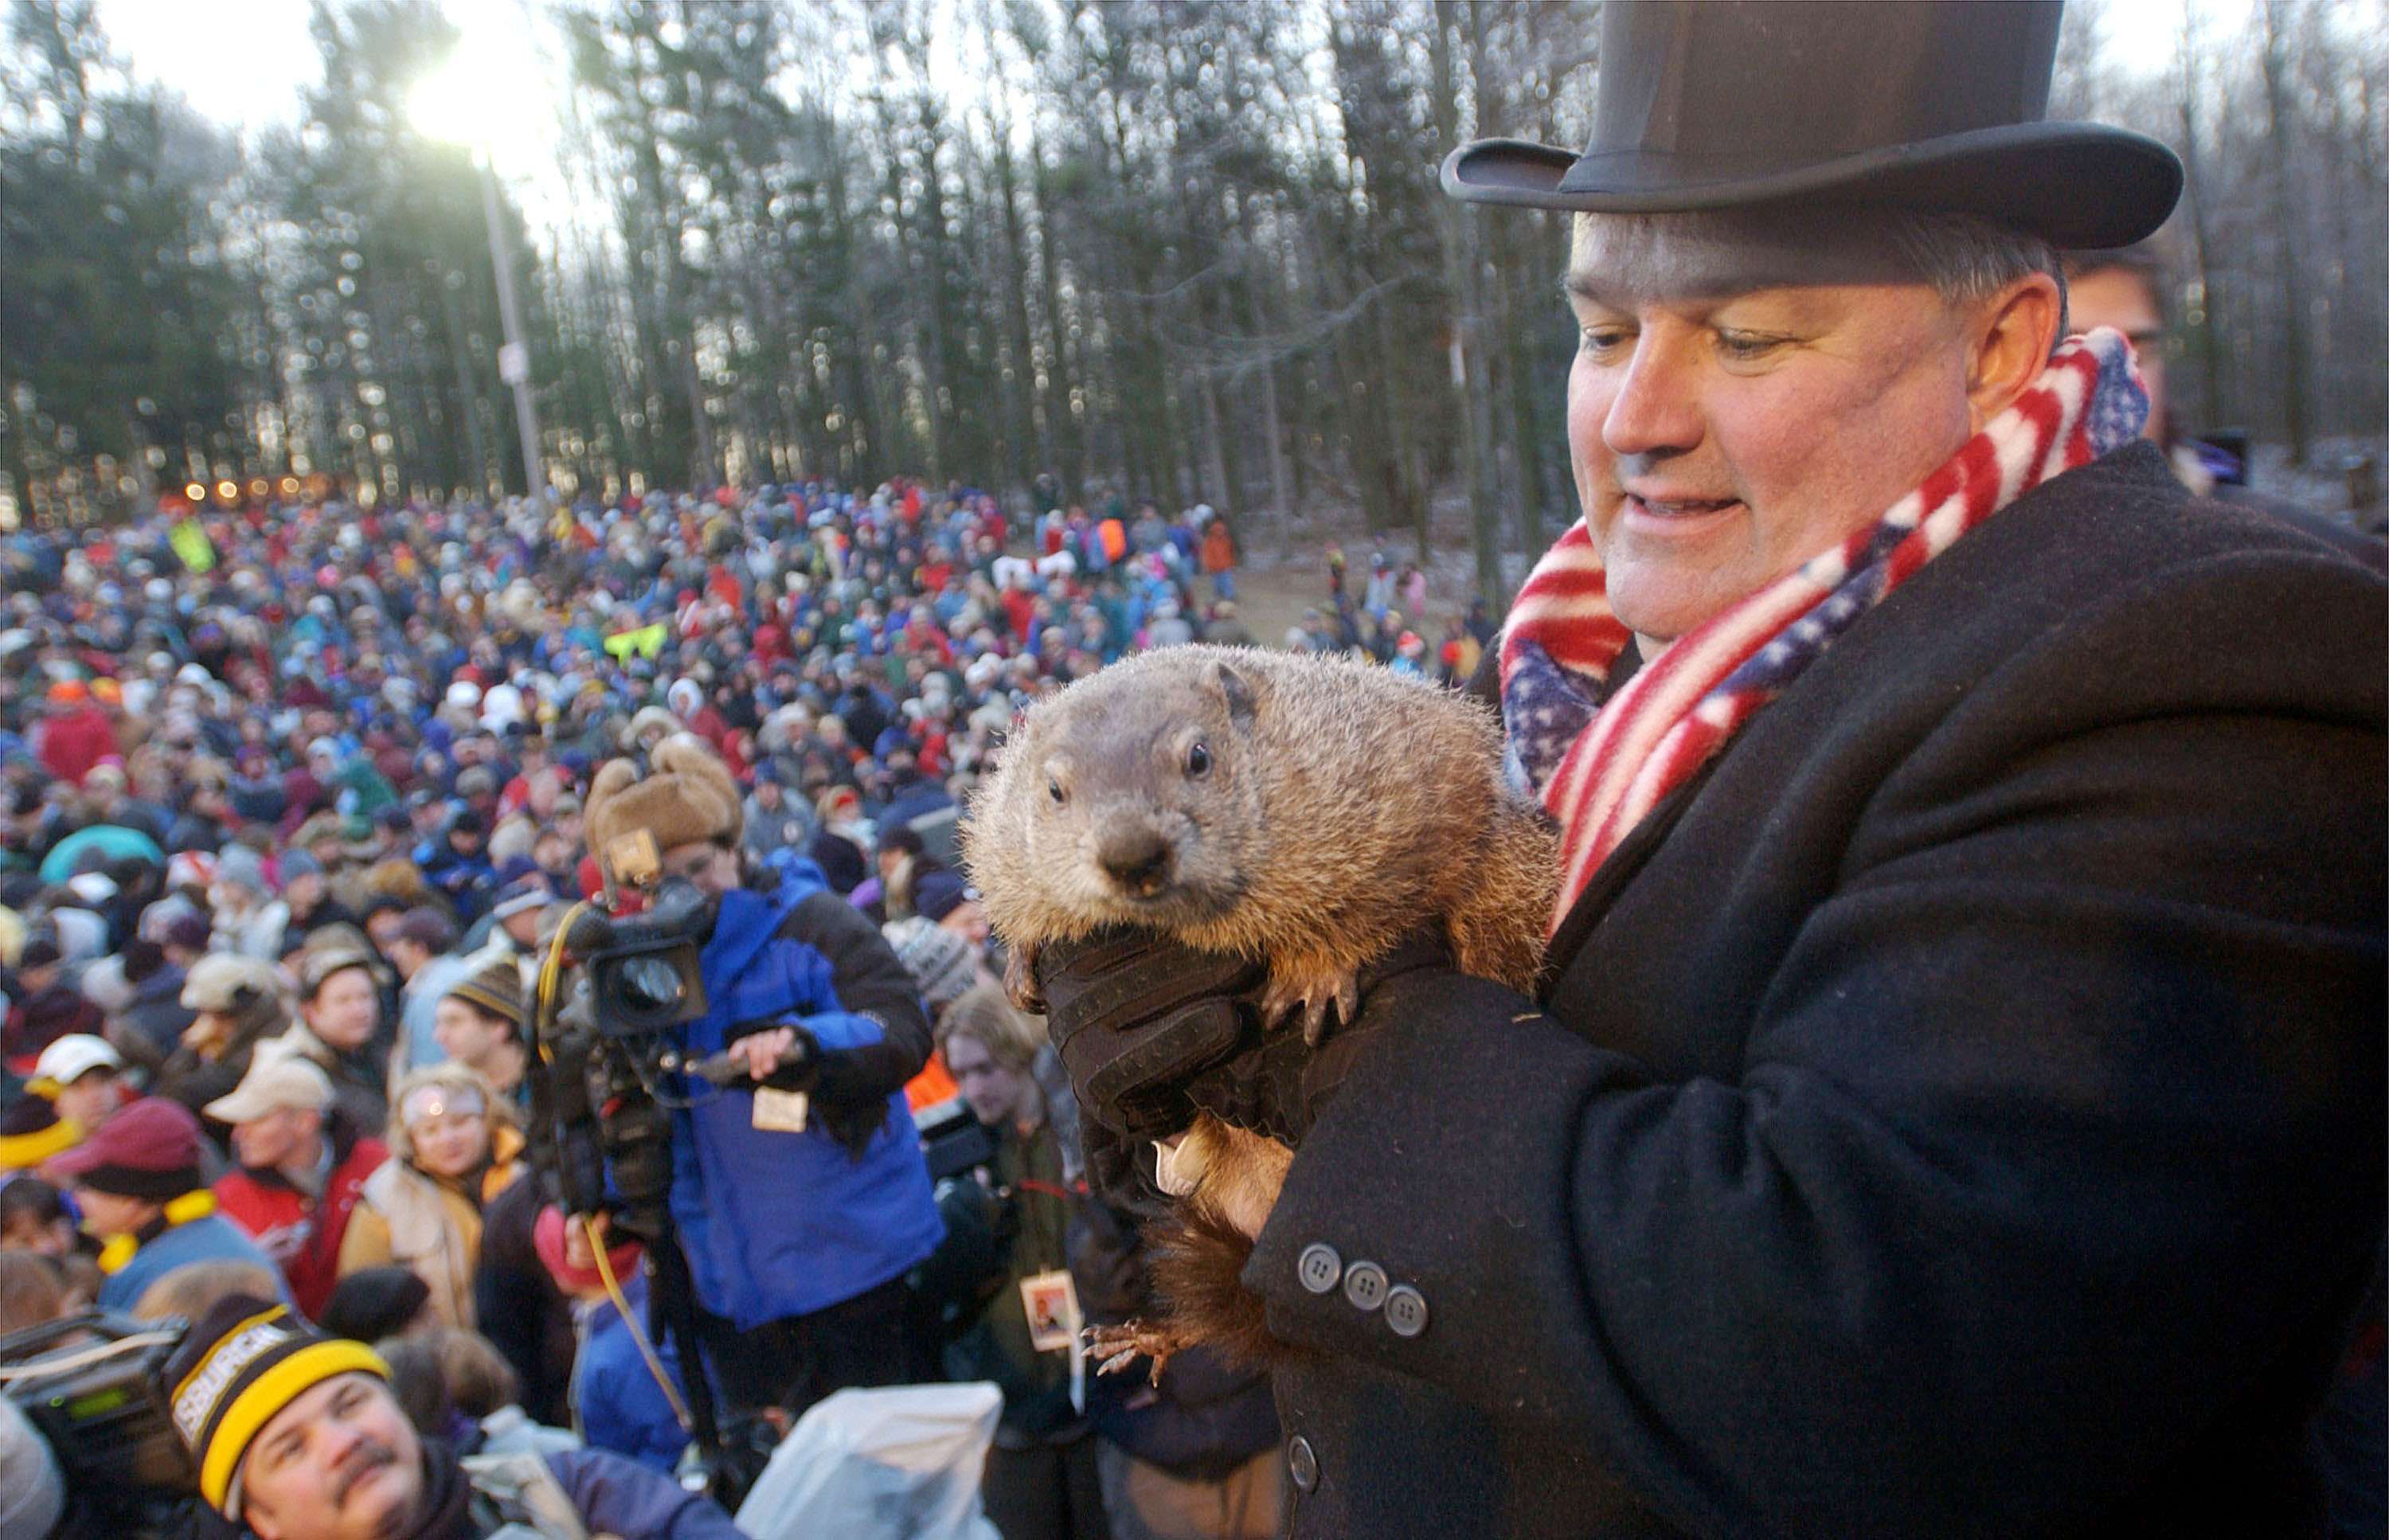 Punxsutawney Phil Sees His Shadow, Winter Will Forge On